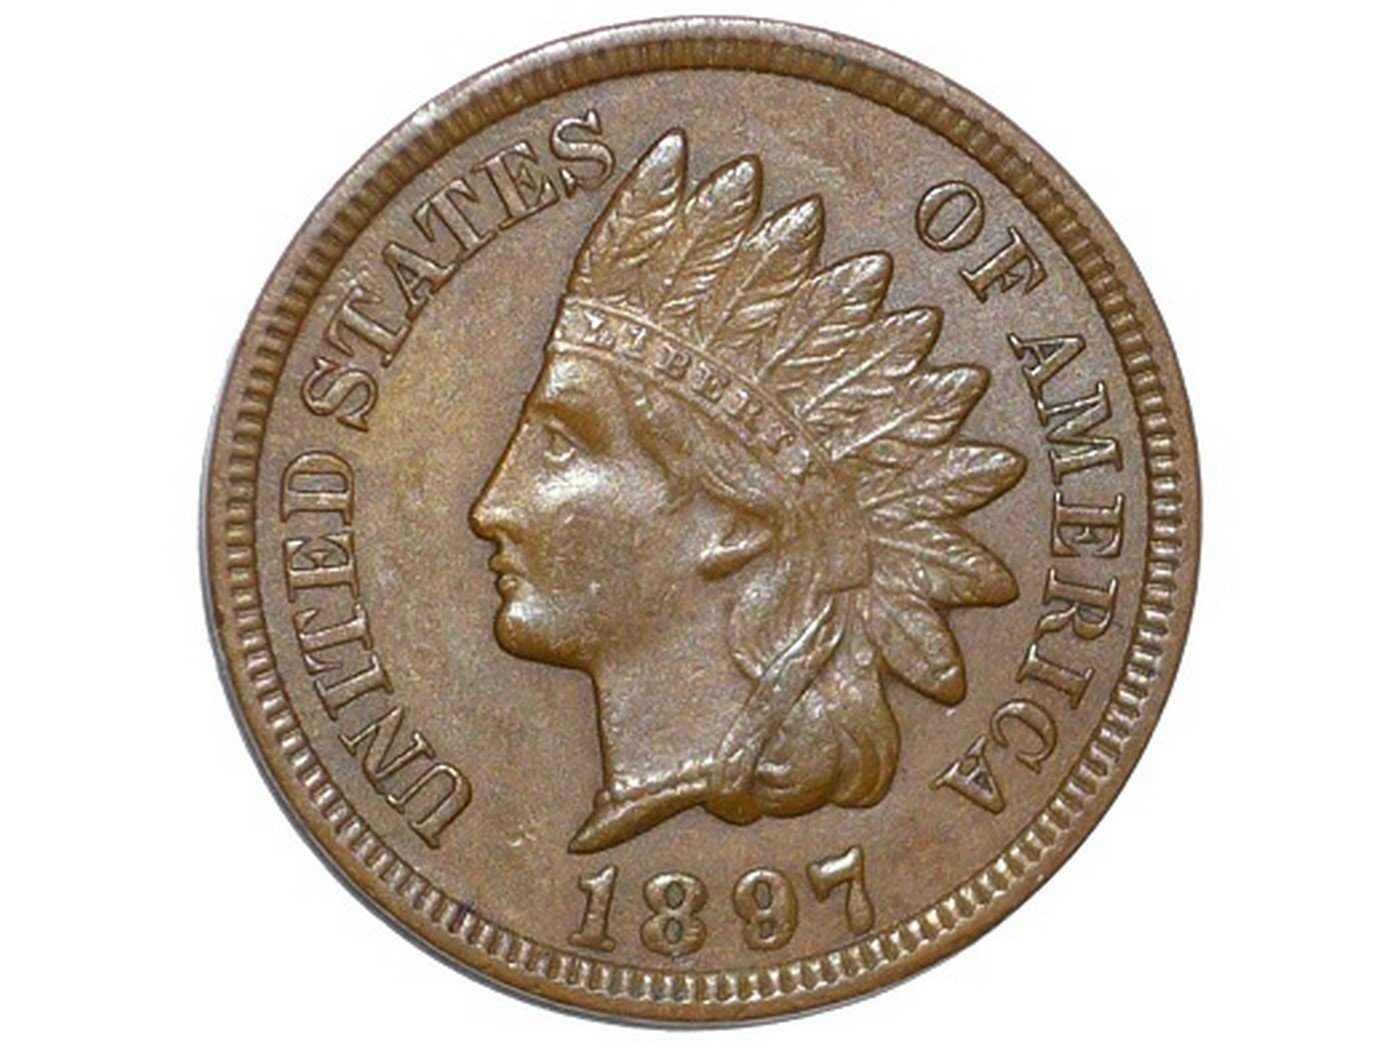 1897 RPD-021 - Indian Head Penny - Photo by David Poliquin